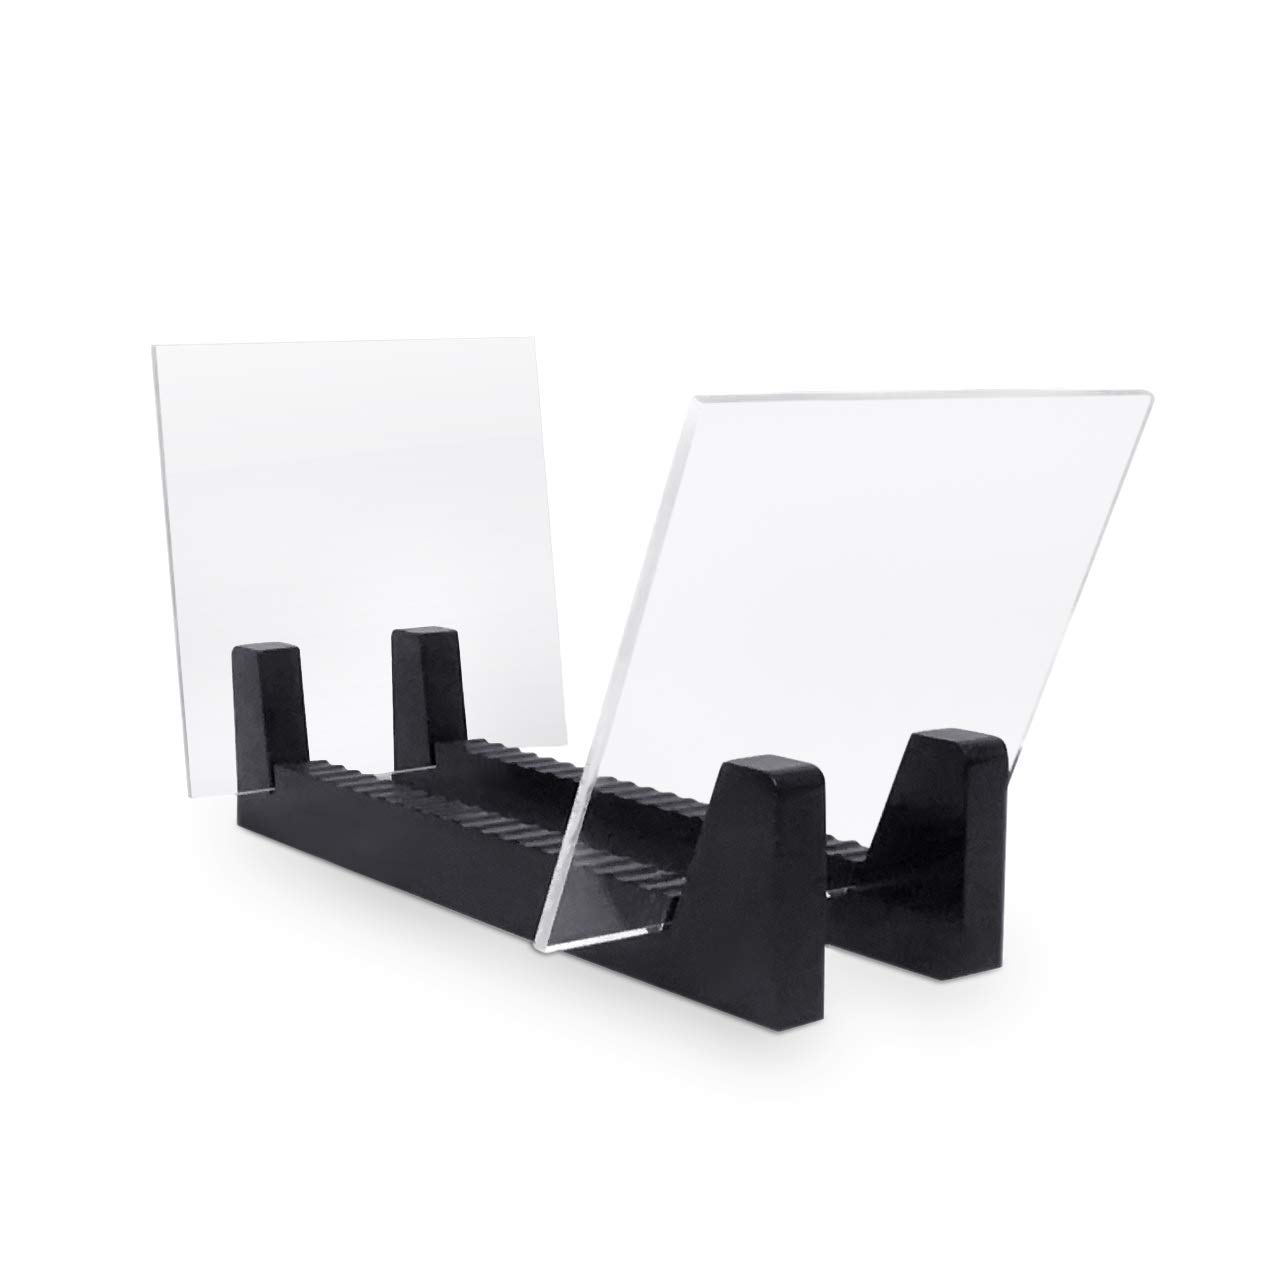 Hudson Hi-Fi Desktop Vinyl Record Album Storage Display Stand and Holder   Cessna Black   Featuring Sustainably Sourced Pine & Flame Polished Acrylic   Holds 50 LP's Record Albums, DVDs, or CDs by Hudson Hi-Fi